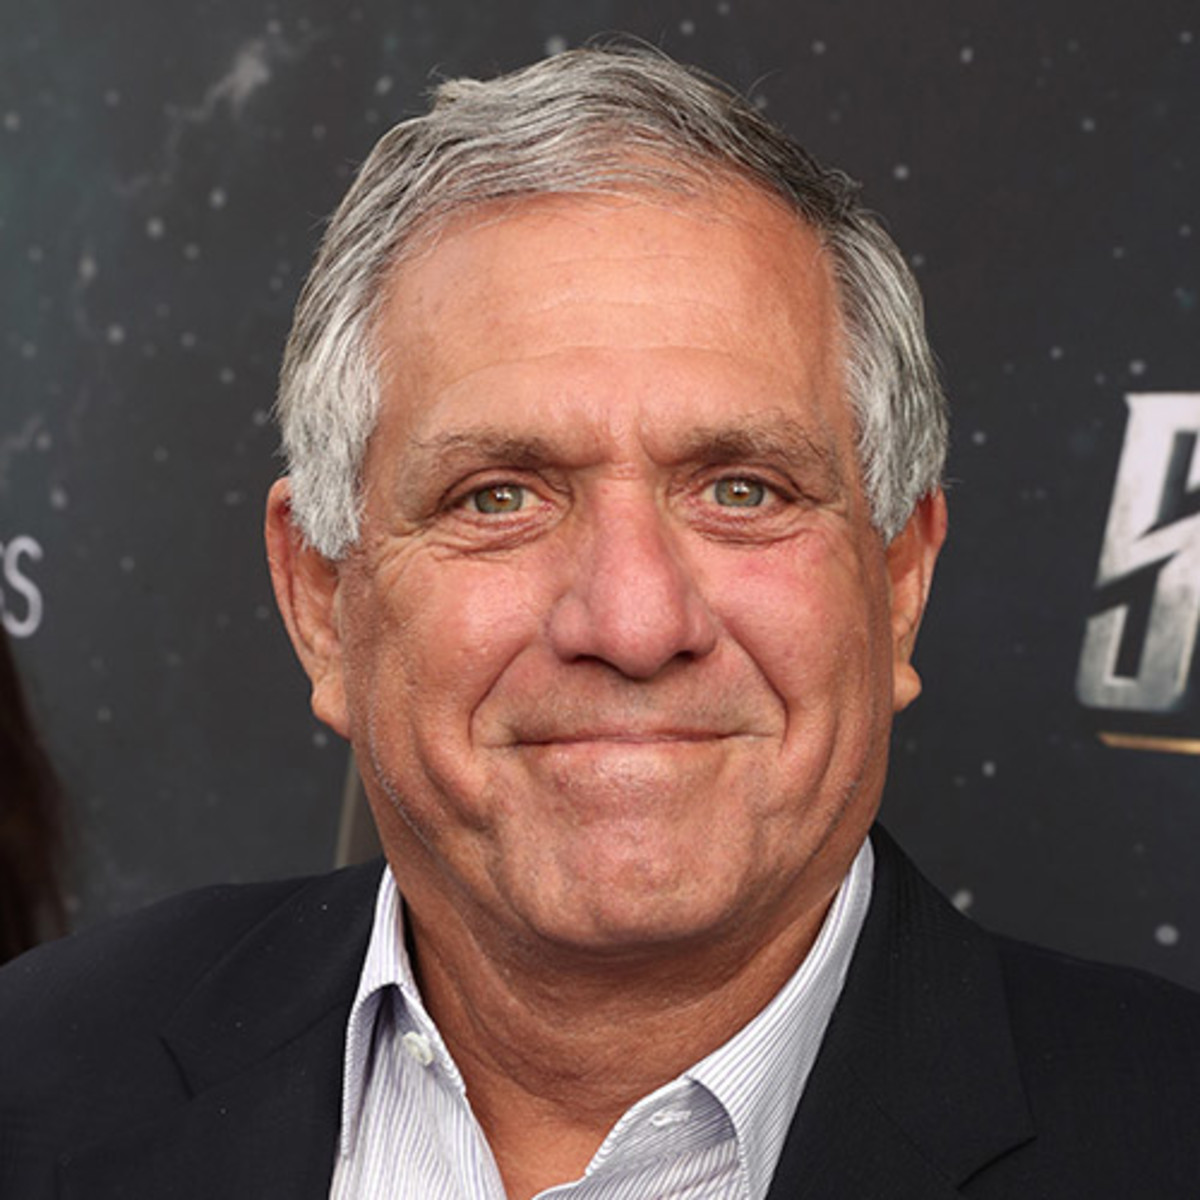 Les Moonves has a friend in Pennsylvania A Keystone state pension fund claims Shari Redstones National Amusements Inc breached its fiduciary